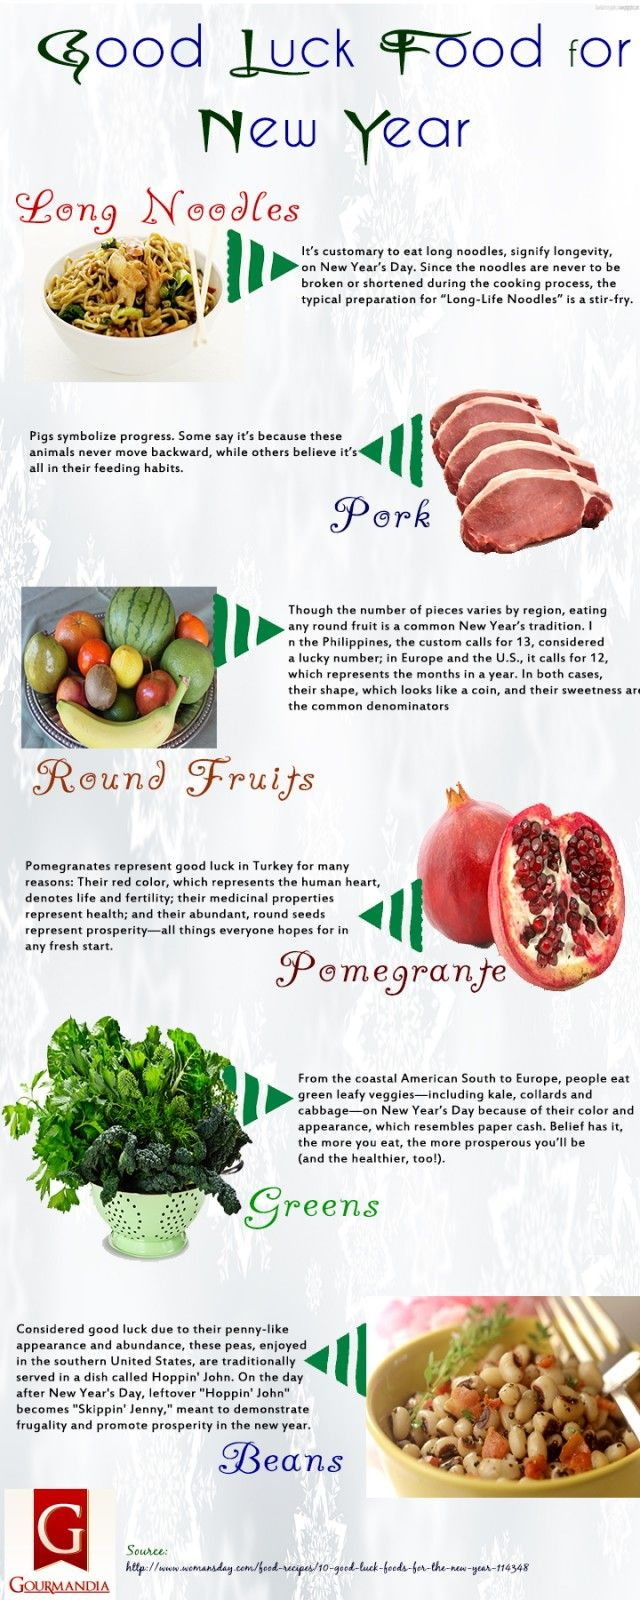 Good Luck Food [infographic]